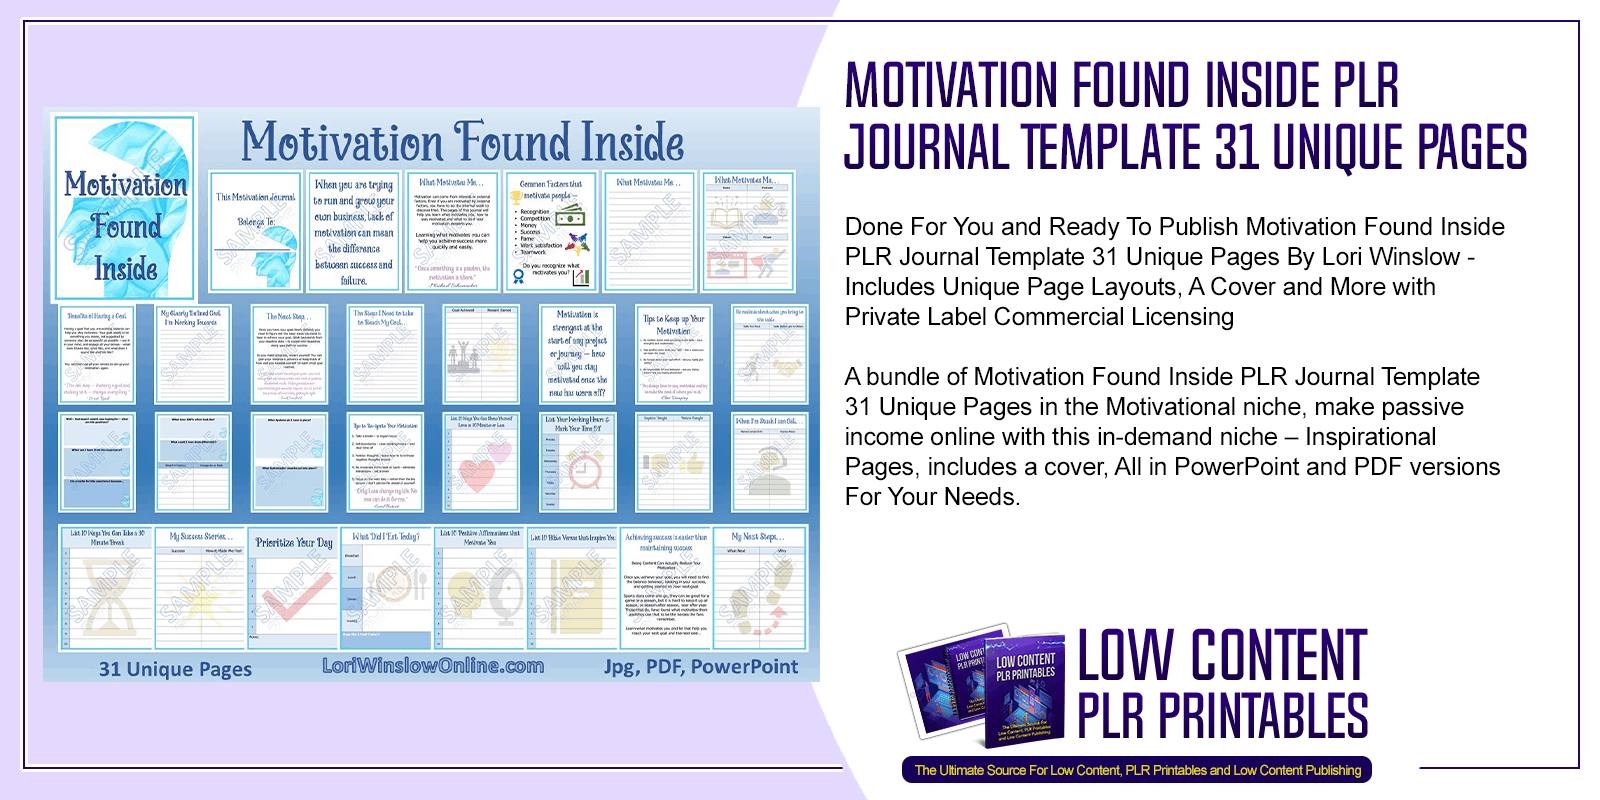 Motivation Found Inside PLR Journal Template 31 Unique Pages